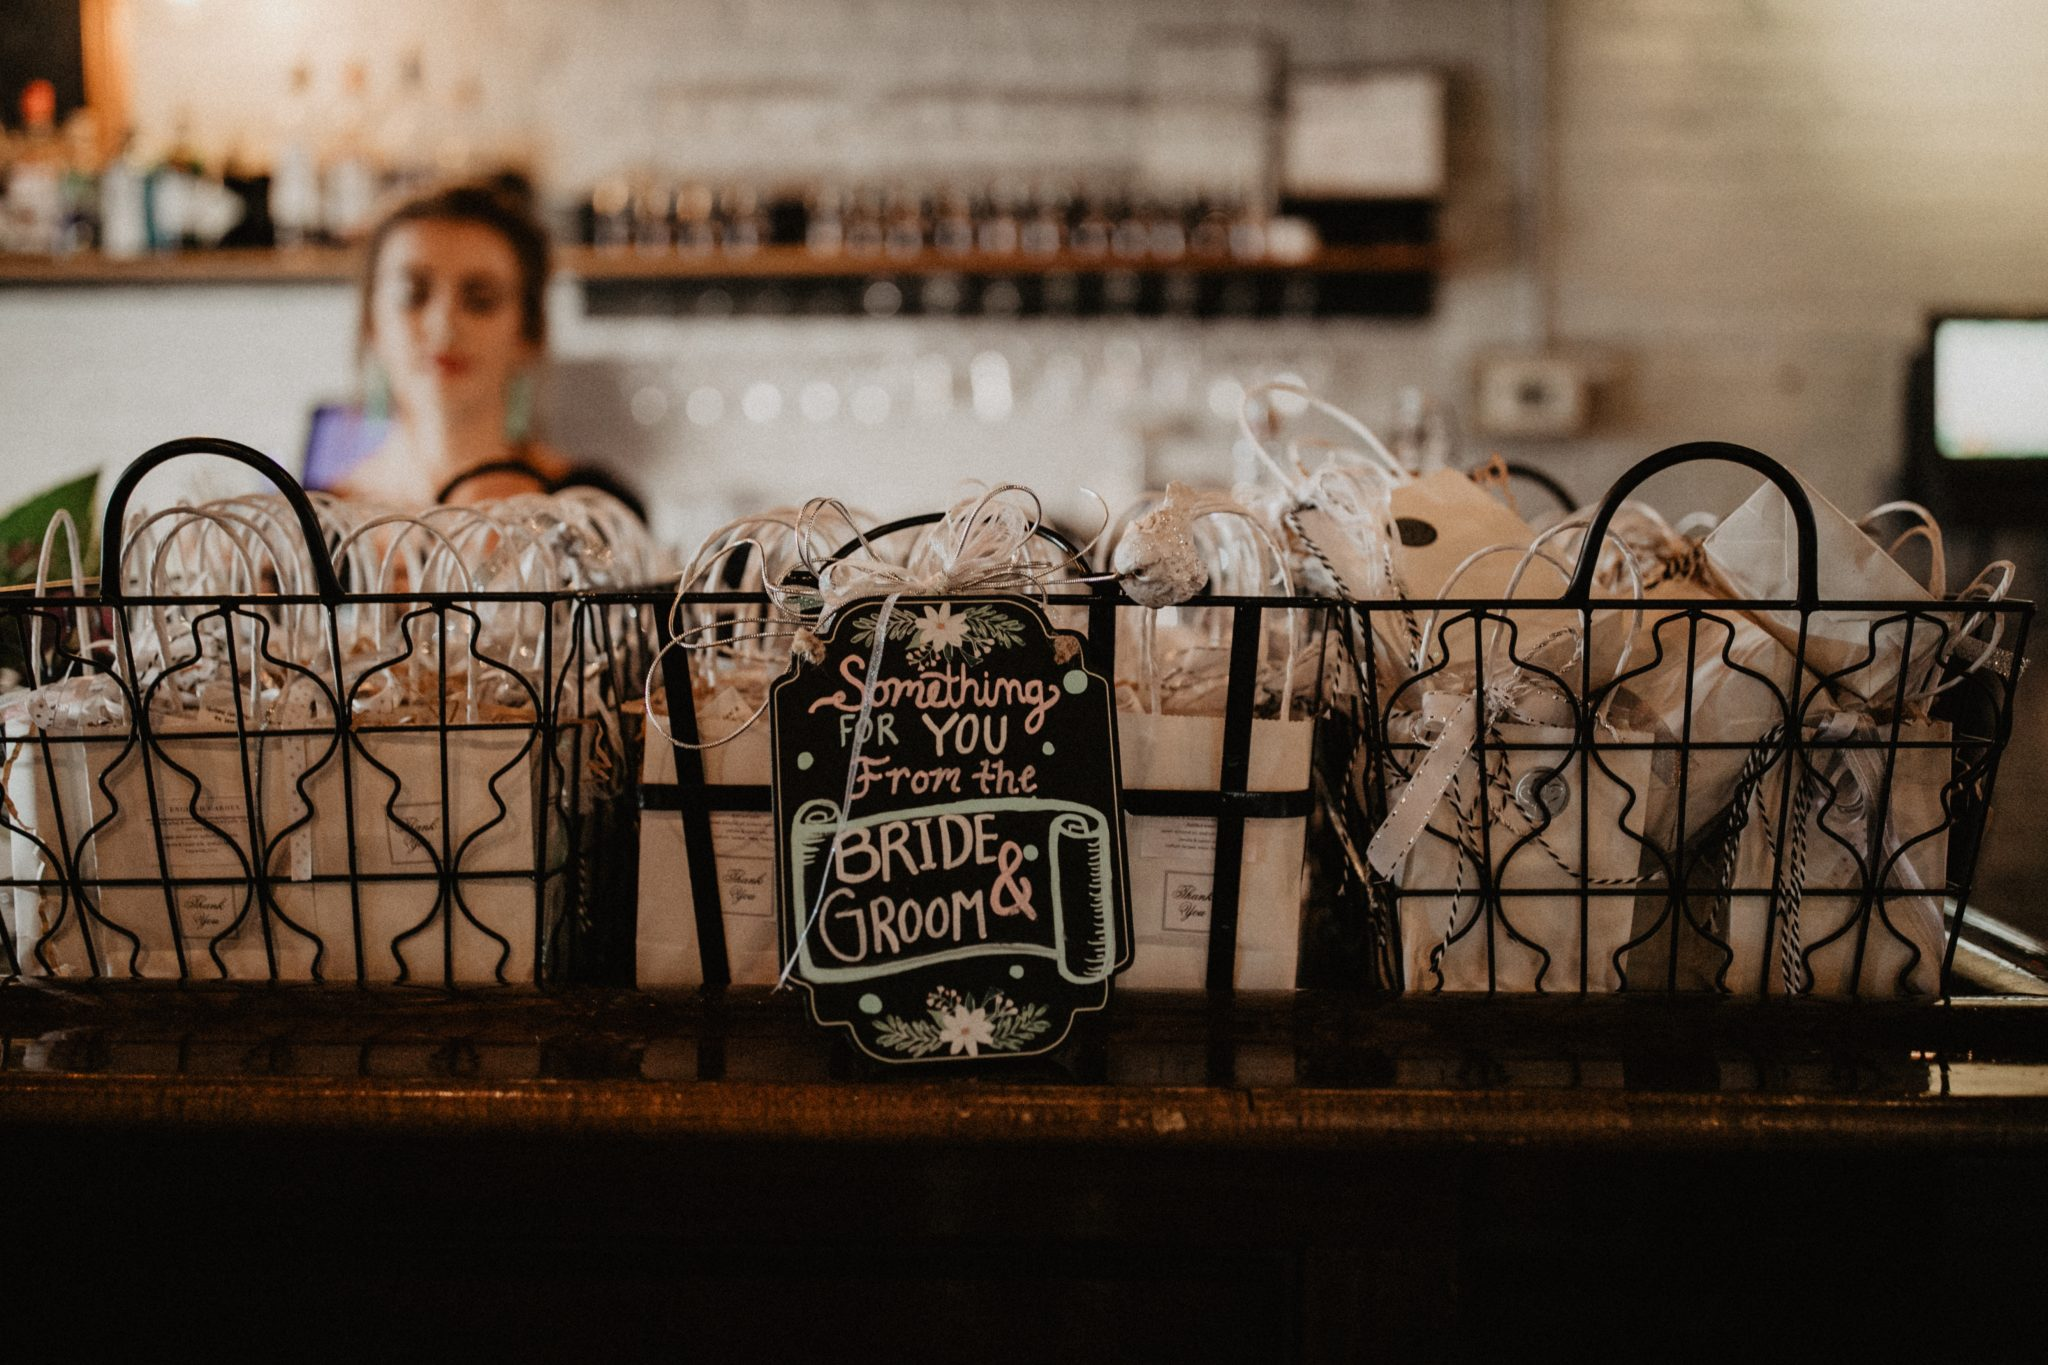 Wire baskets filled with handmade soaps in white paper bags as wedding guest gifts.